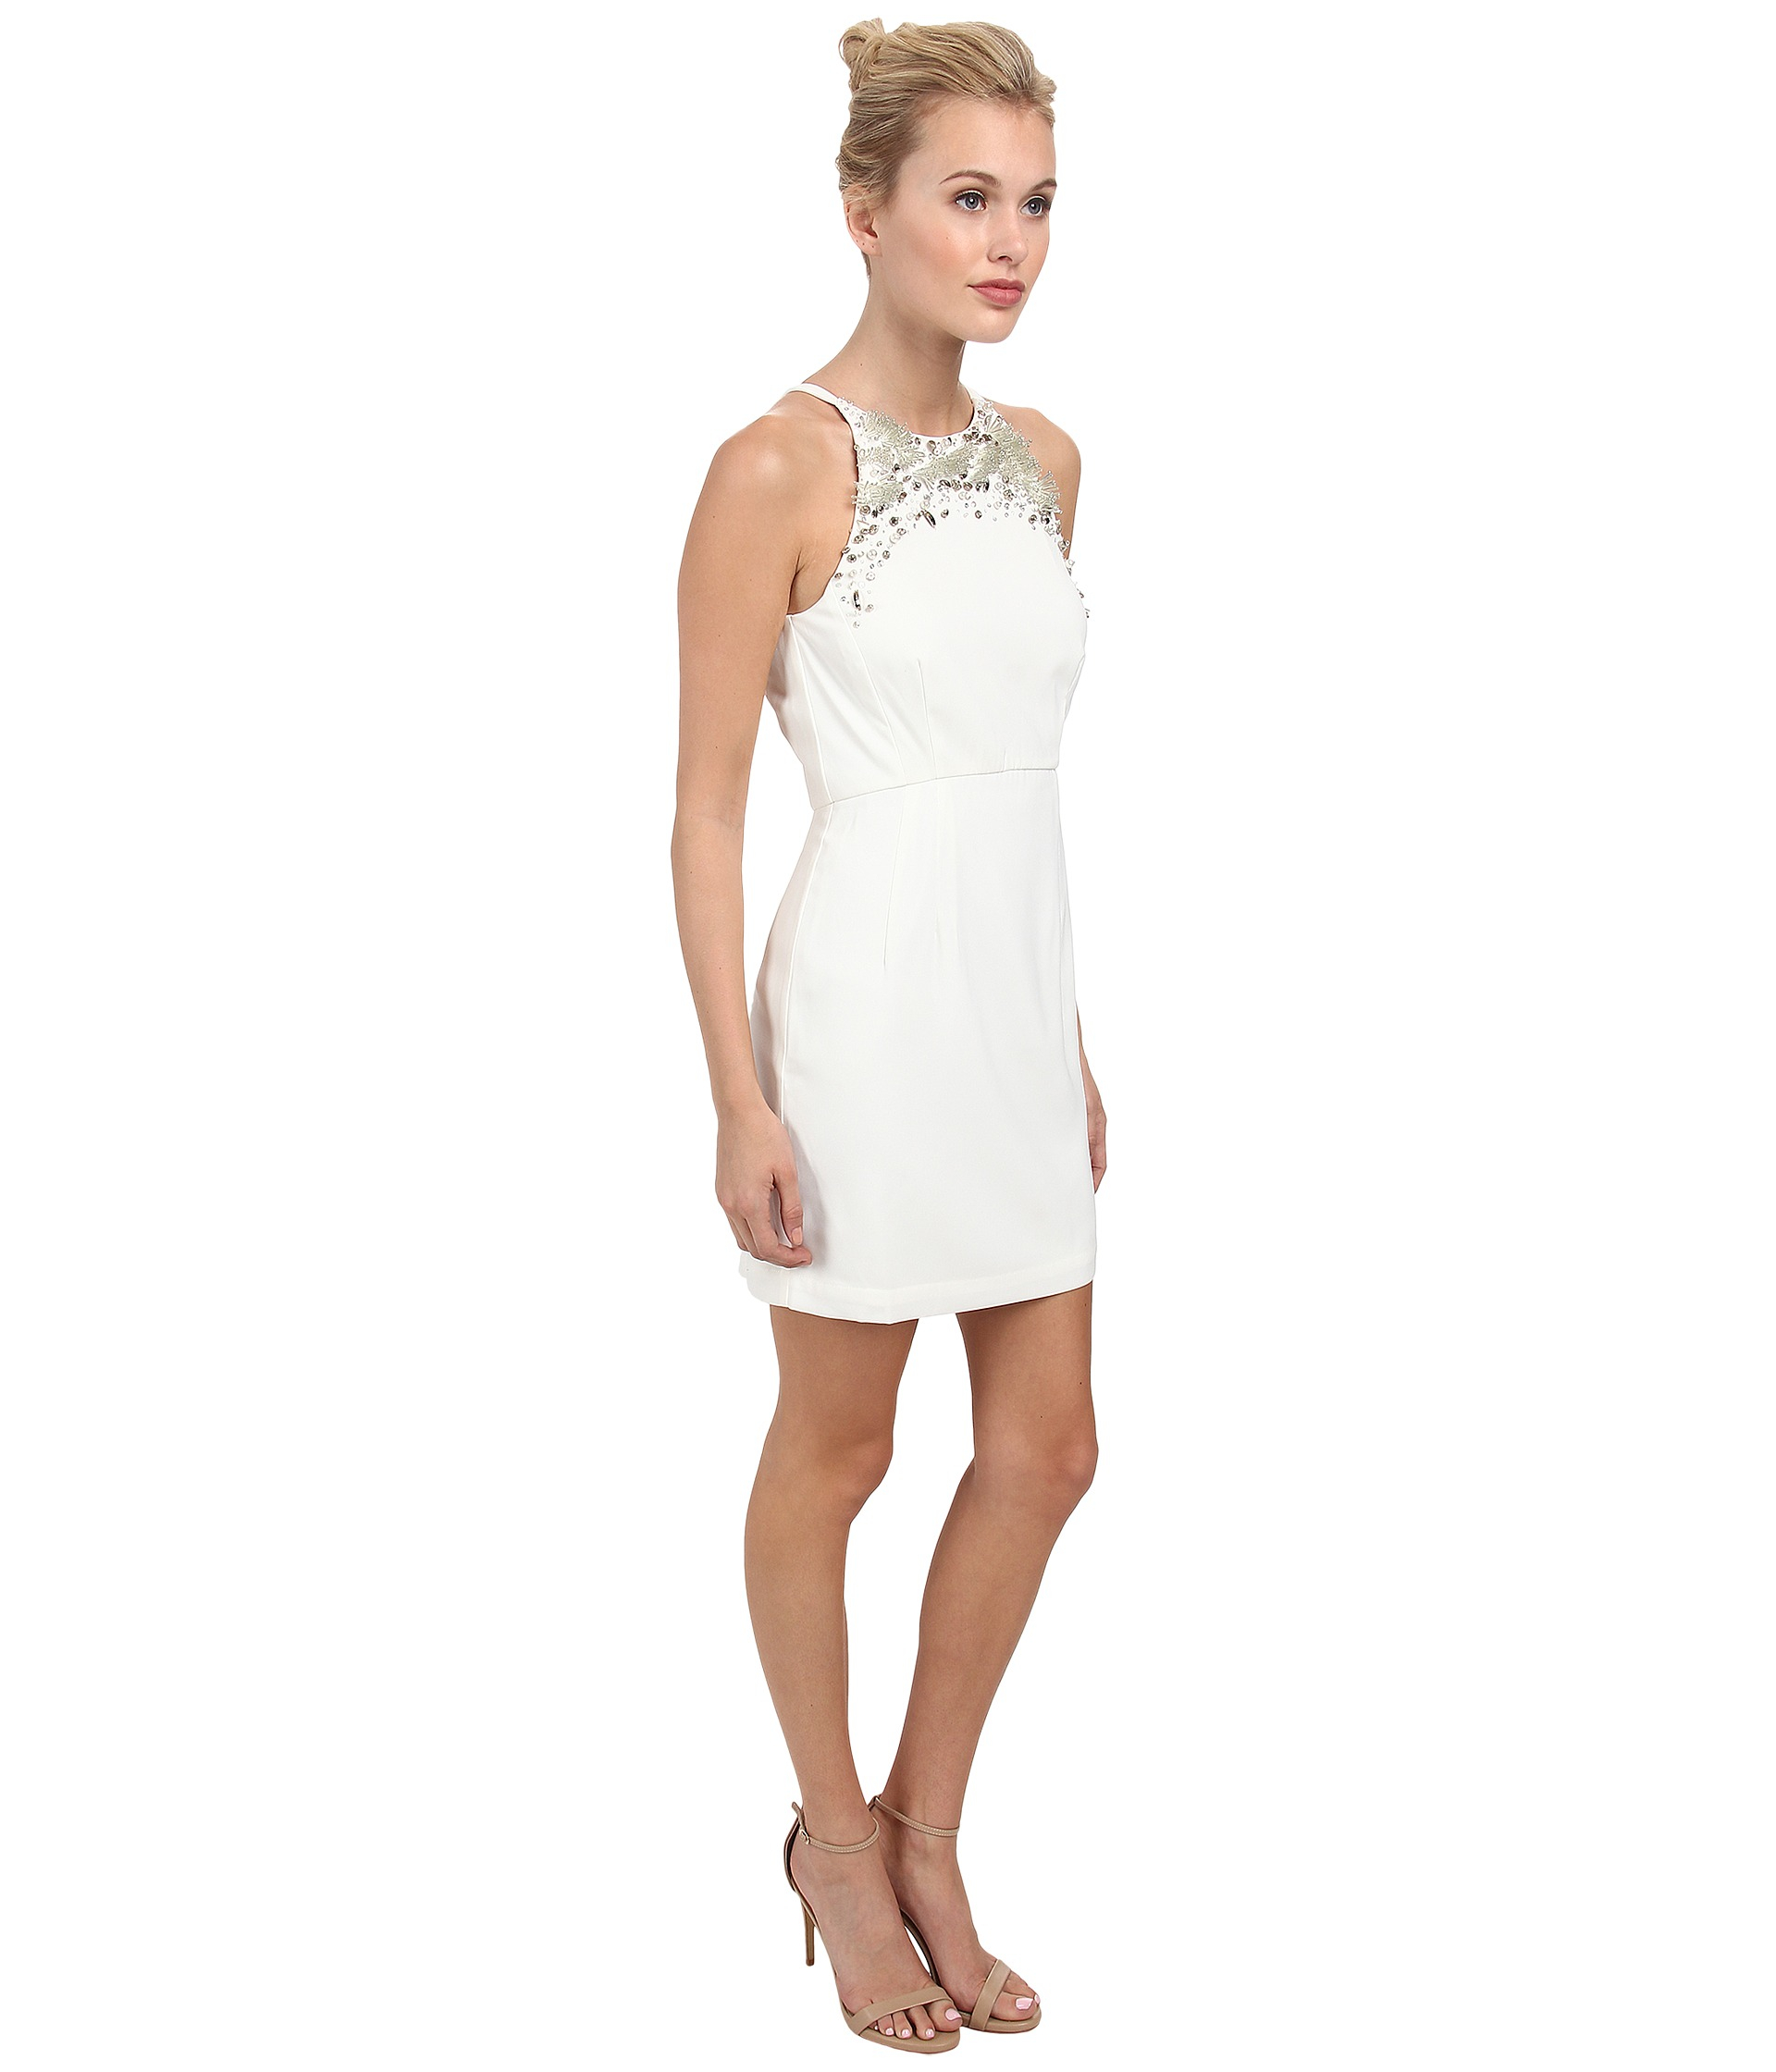 484b7658c9c French Connection New Moon Dress 71Dew in White - Lyst